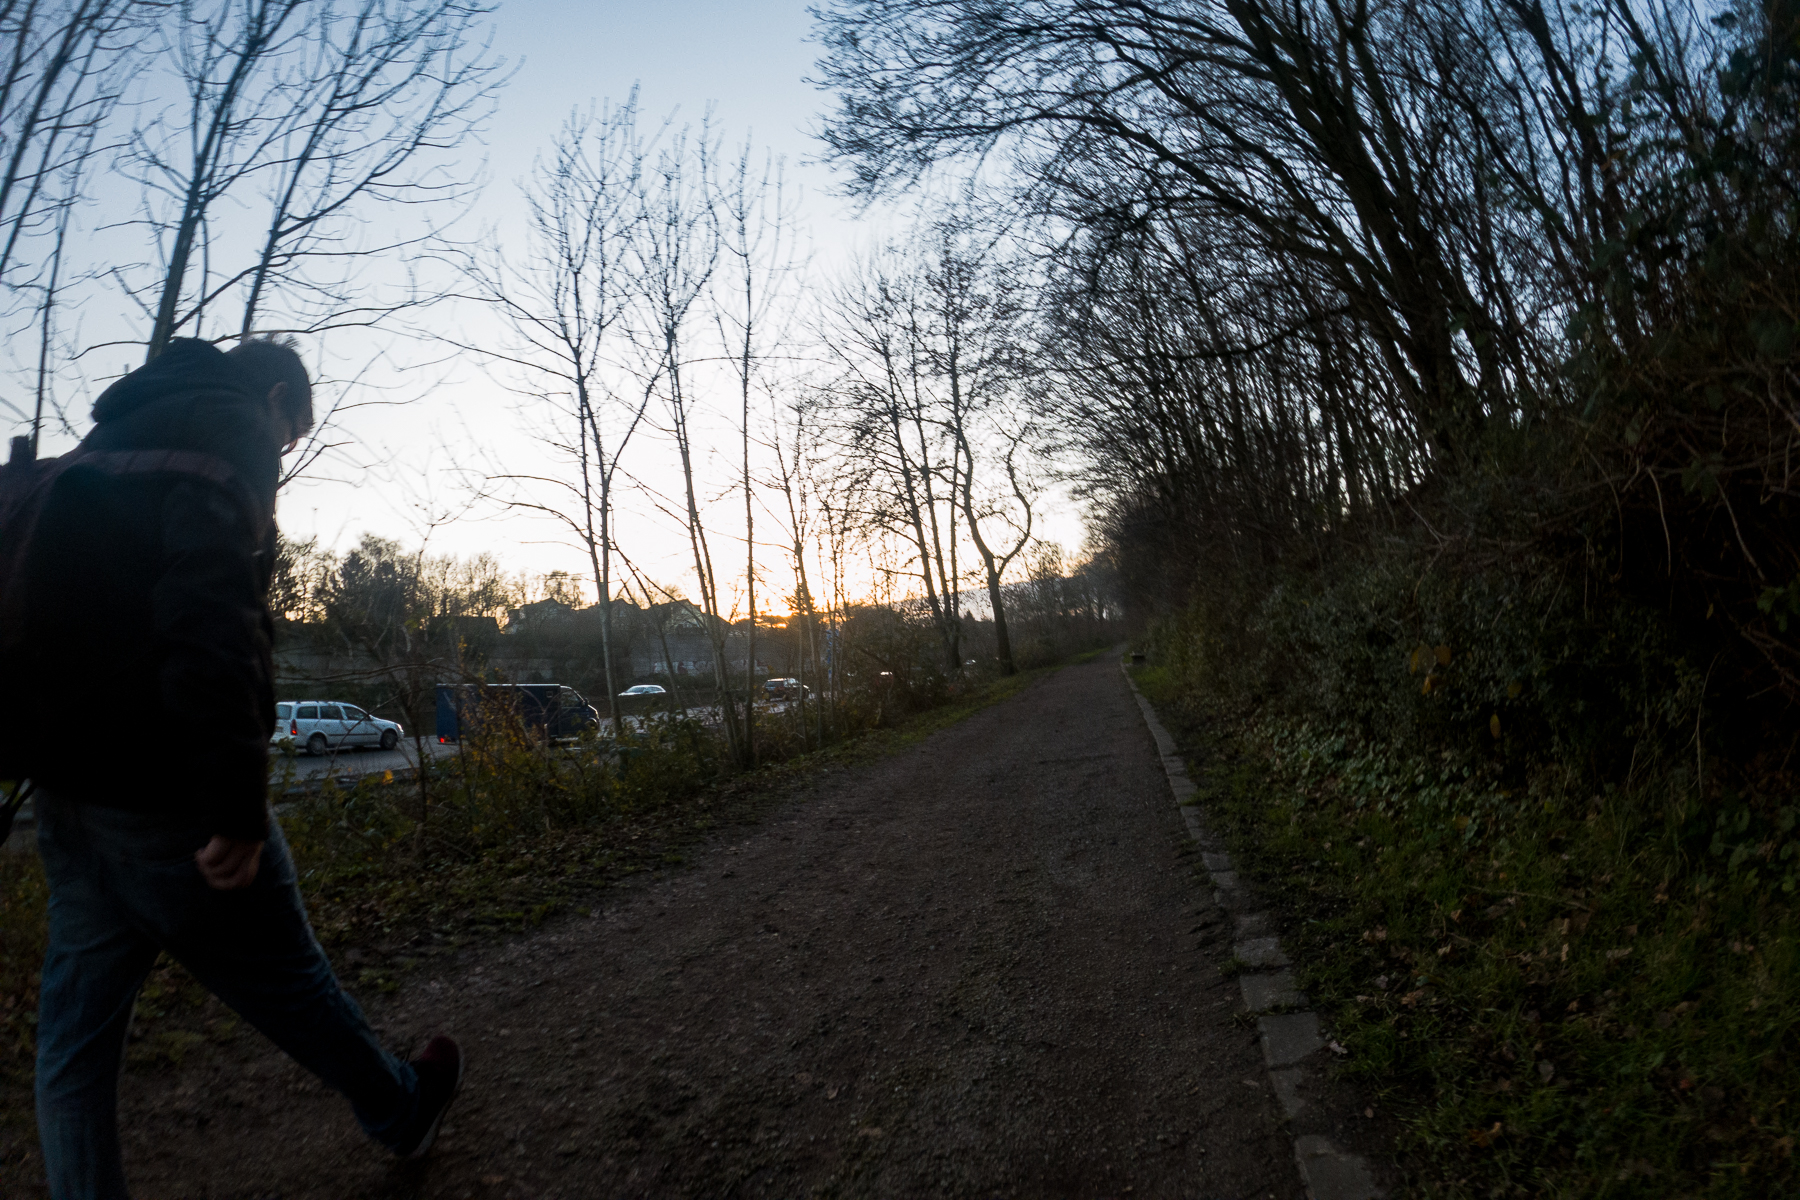 Passing a walker on a short stretch of dirt trail along the autobahn A40 on a newly discovered 10 km route near my parents' home. Mülheim, Germany, December 19, 2019.